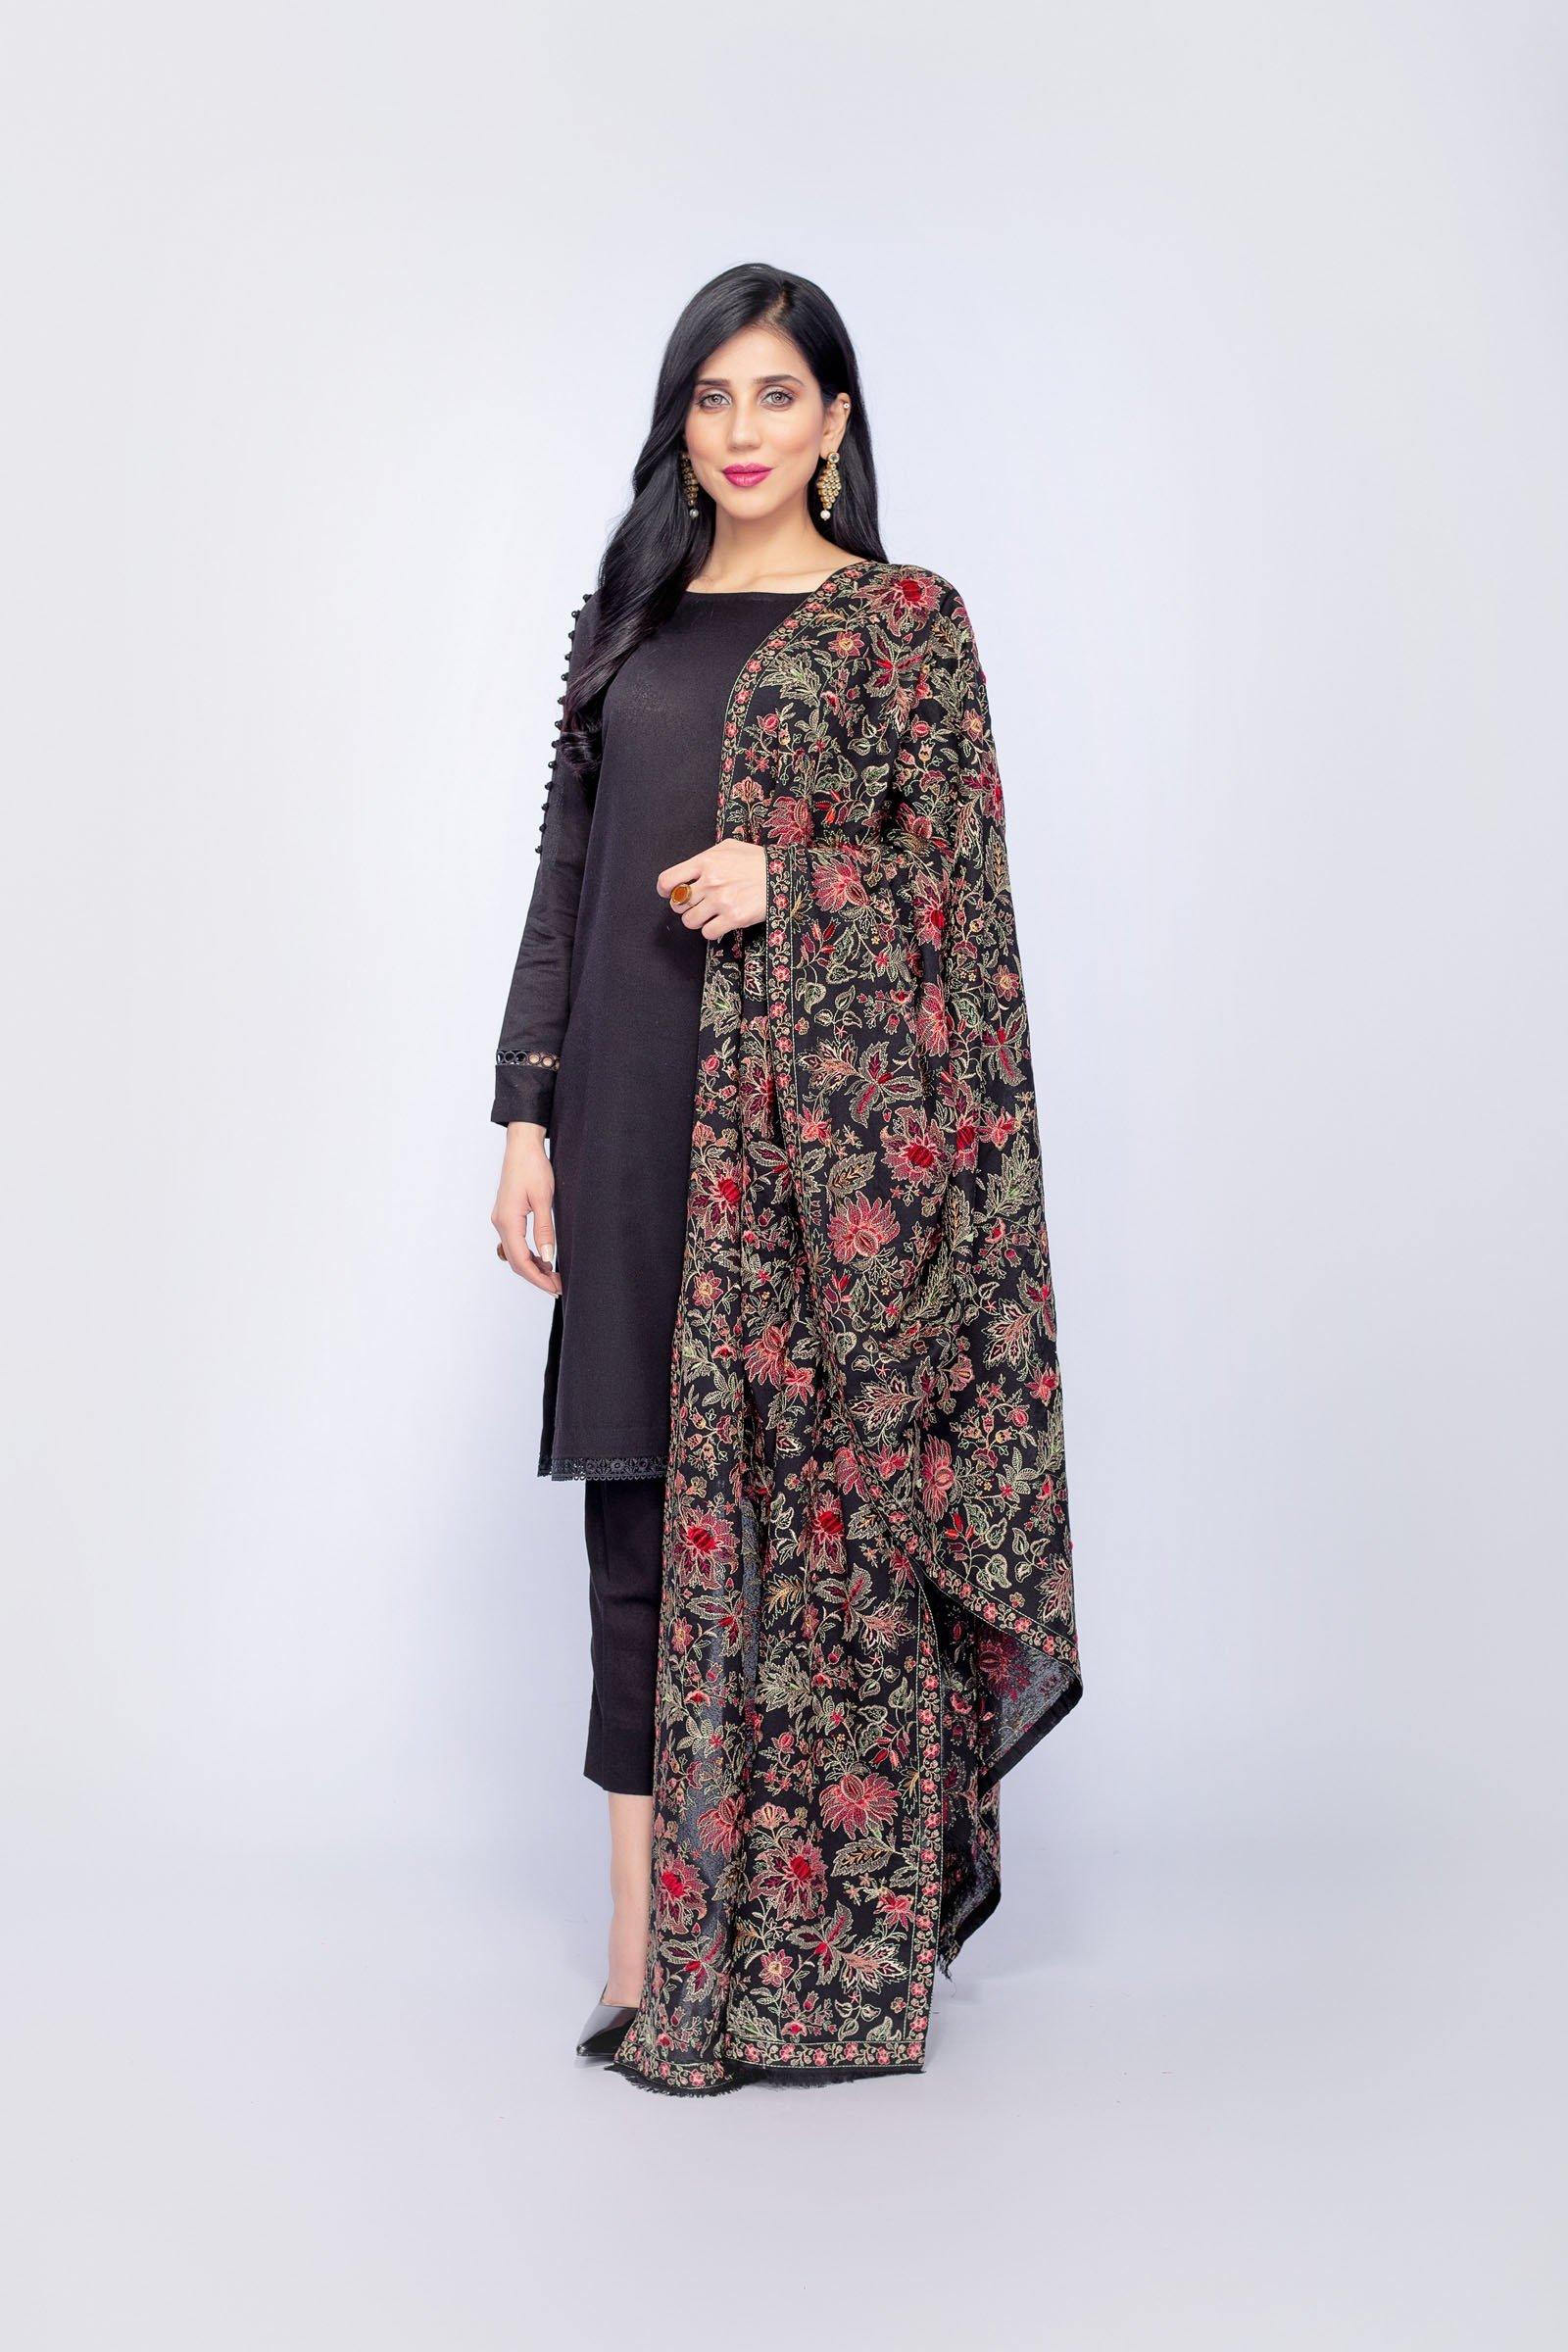 Grace 10 - Formal Heavy Embroidered Karandi Lawn shawl